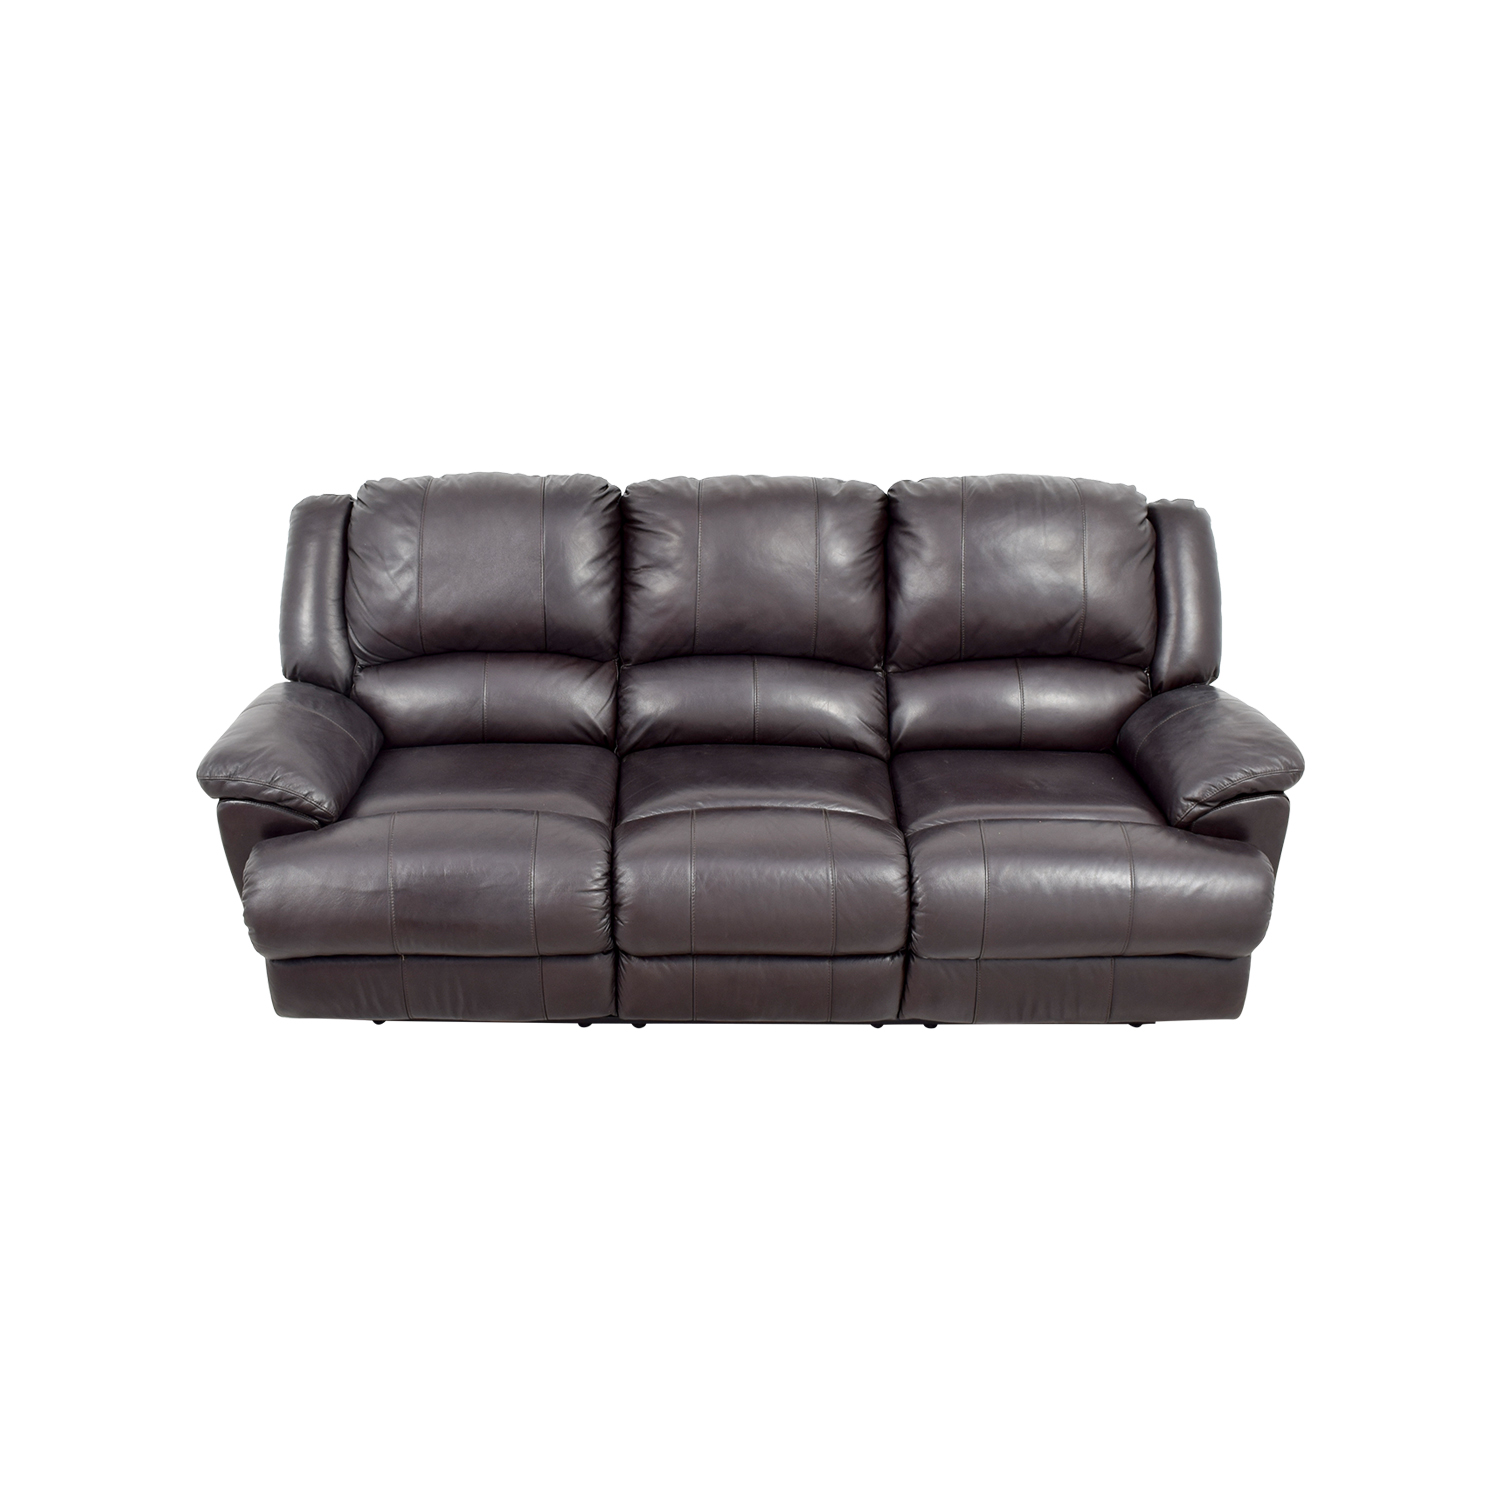 jennifer convertibles leather reclining sofa convertible bed with storage classic sofas used for sale